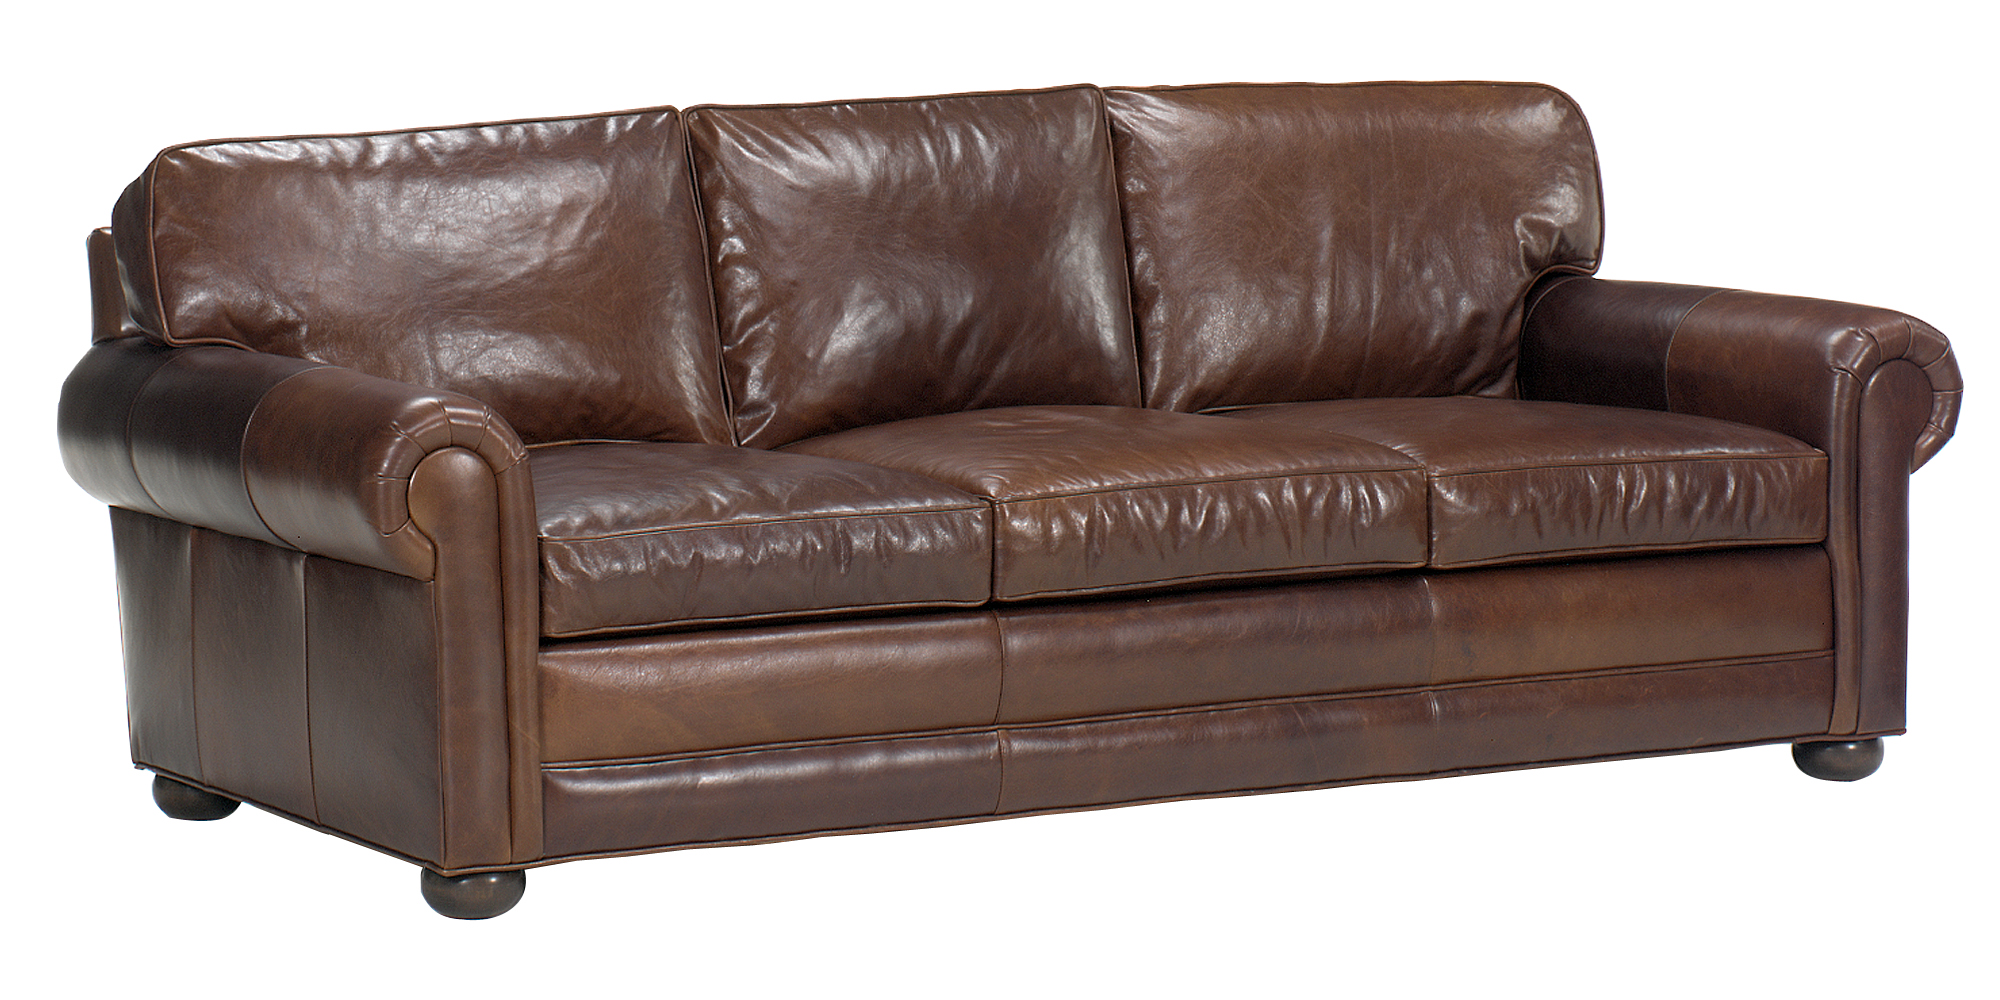 deep leather sofas uk versace sheffield molly double reclining sofa lane furniture